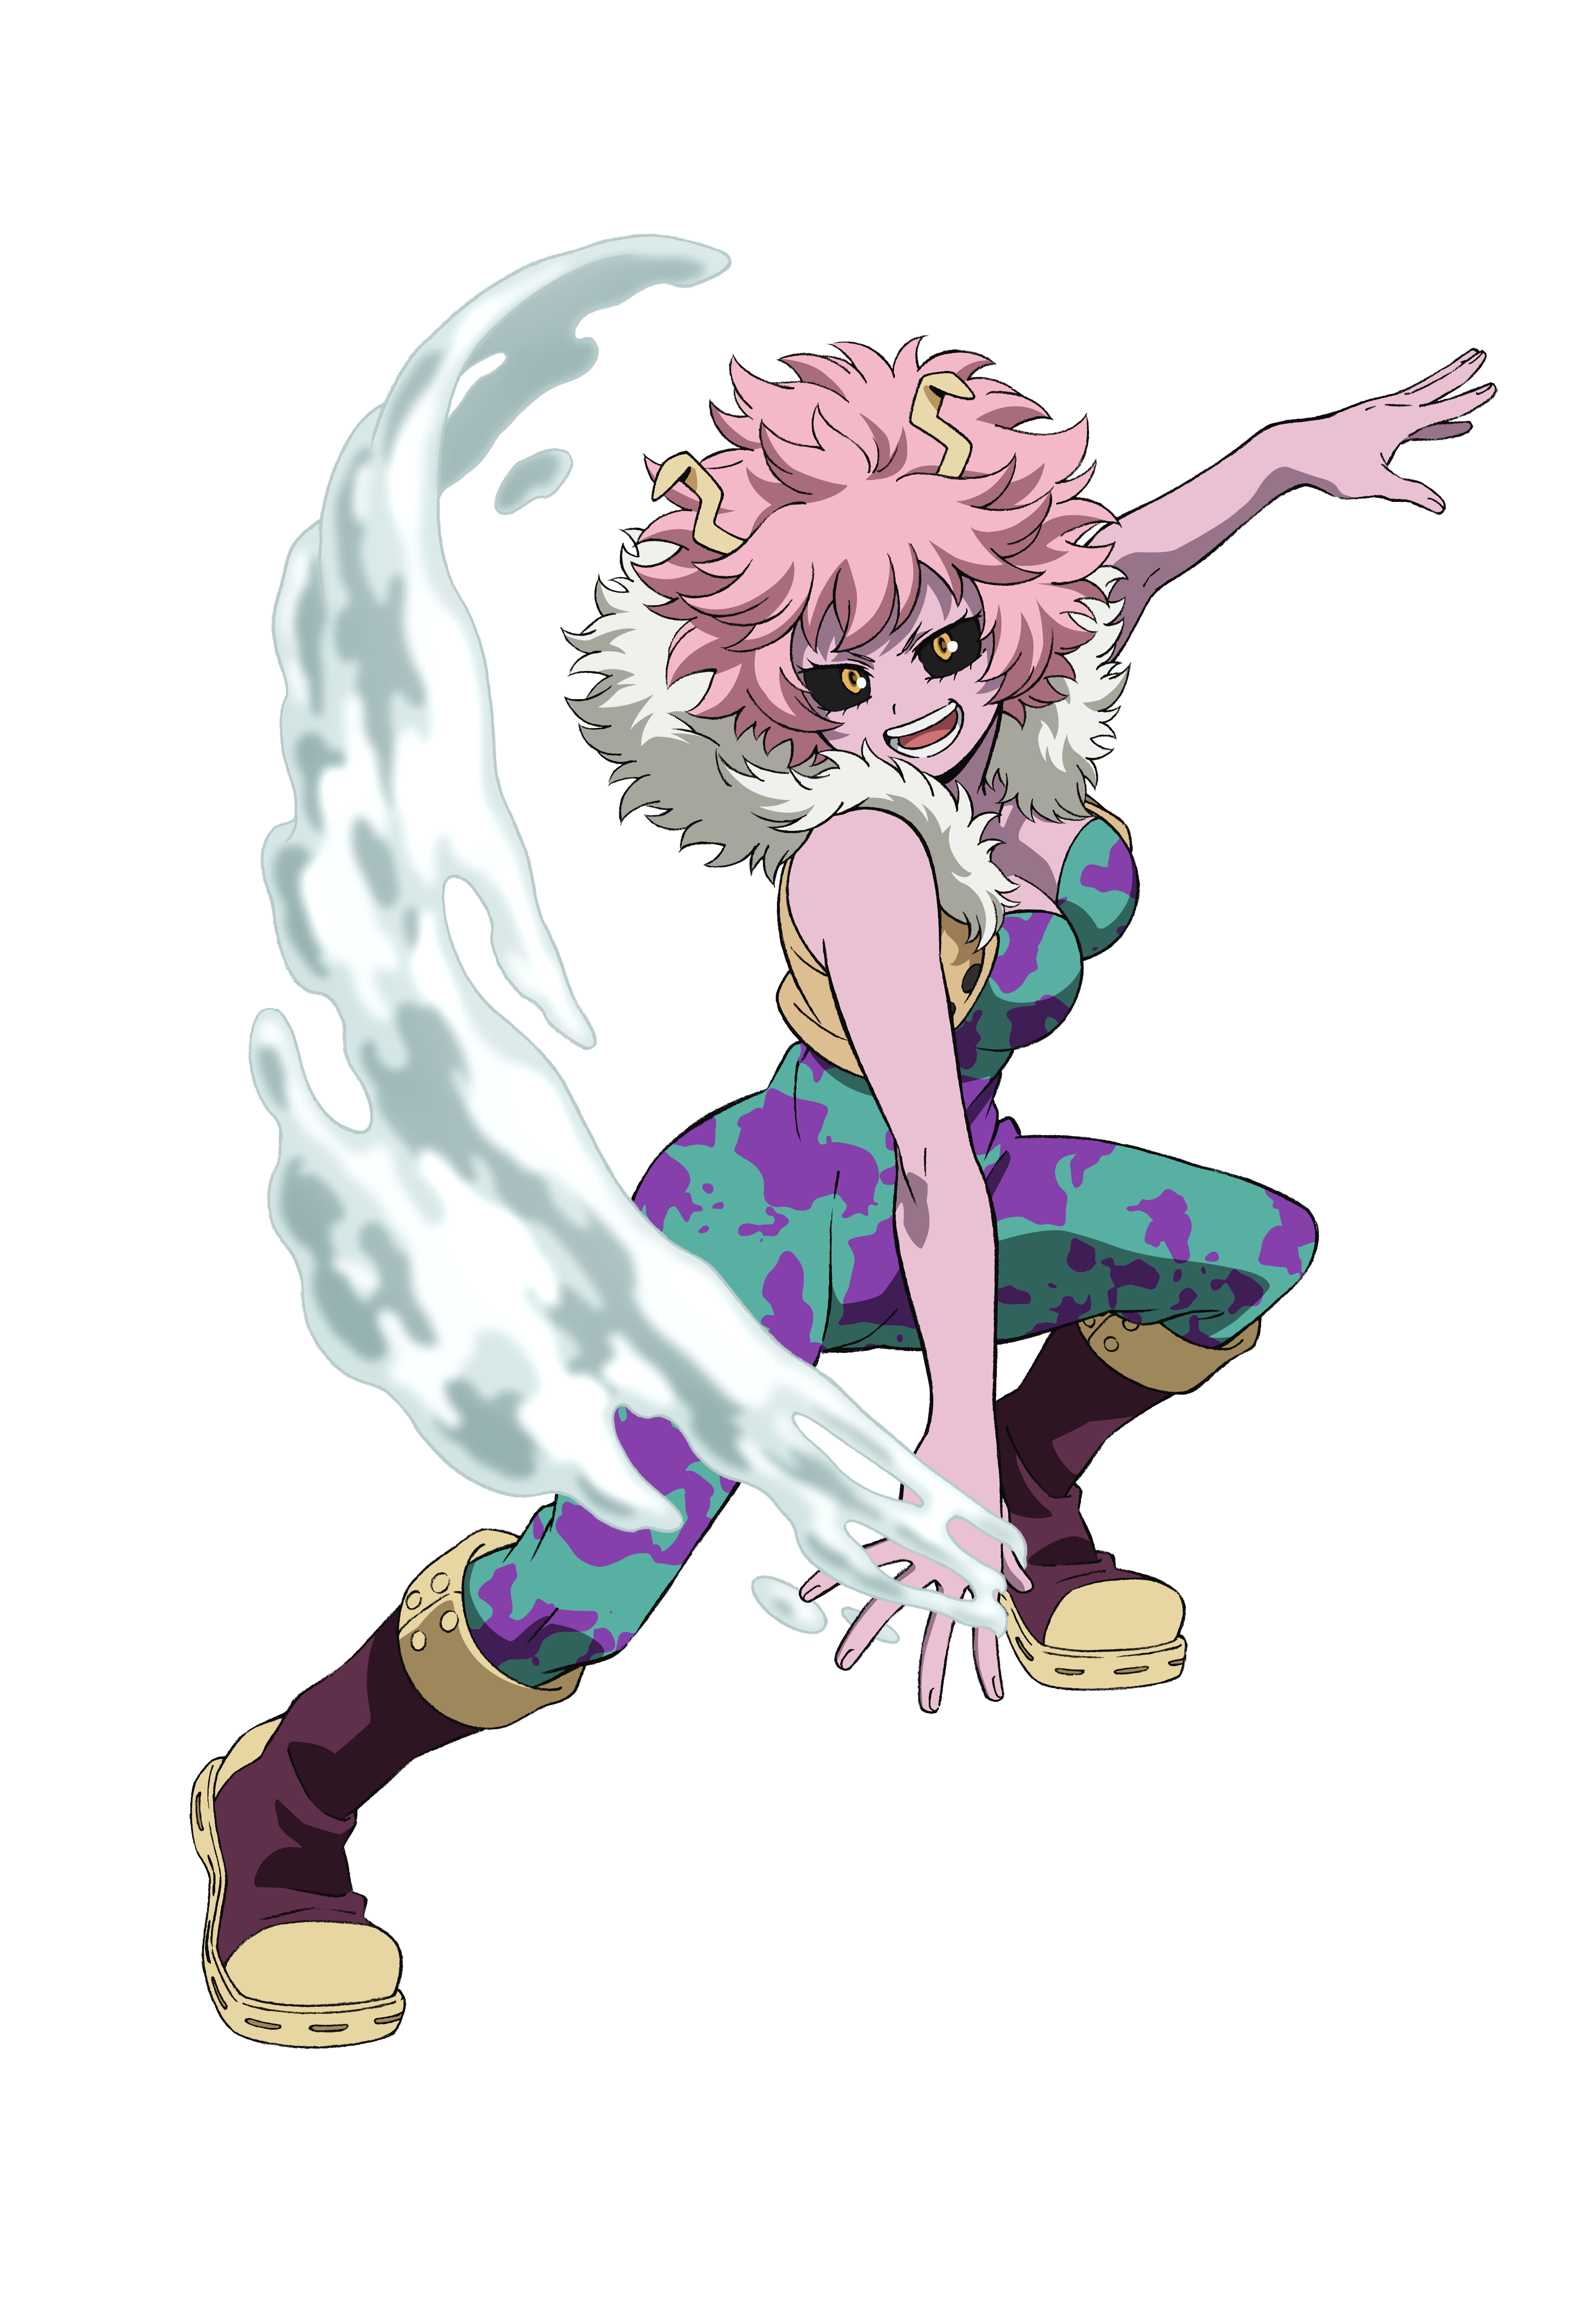 Mina Ashido Acid Render (My Hero One's Justice 2)